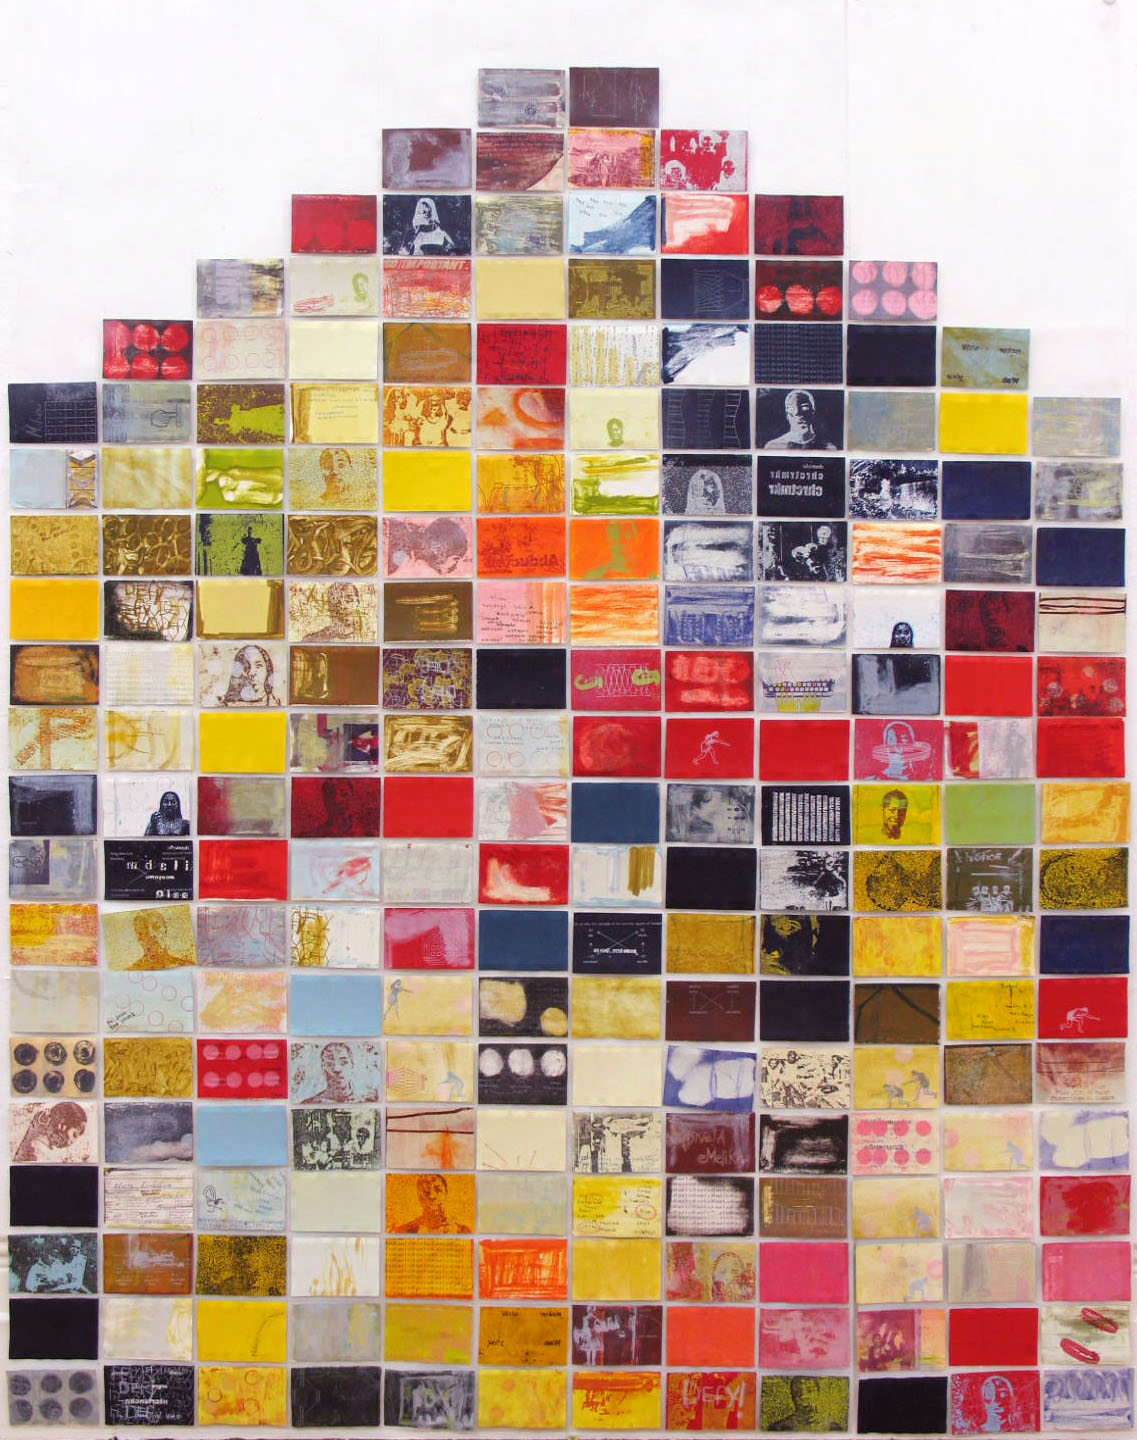 Imbumba Yengceba Zayo (The Sum of Its Part), 2004. Gum transfer print and silkscreen, 207 x 212 cm; Made up of 222 images 15.24 x 10. 16 cm each.